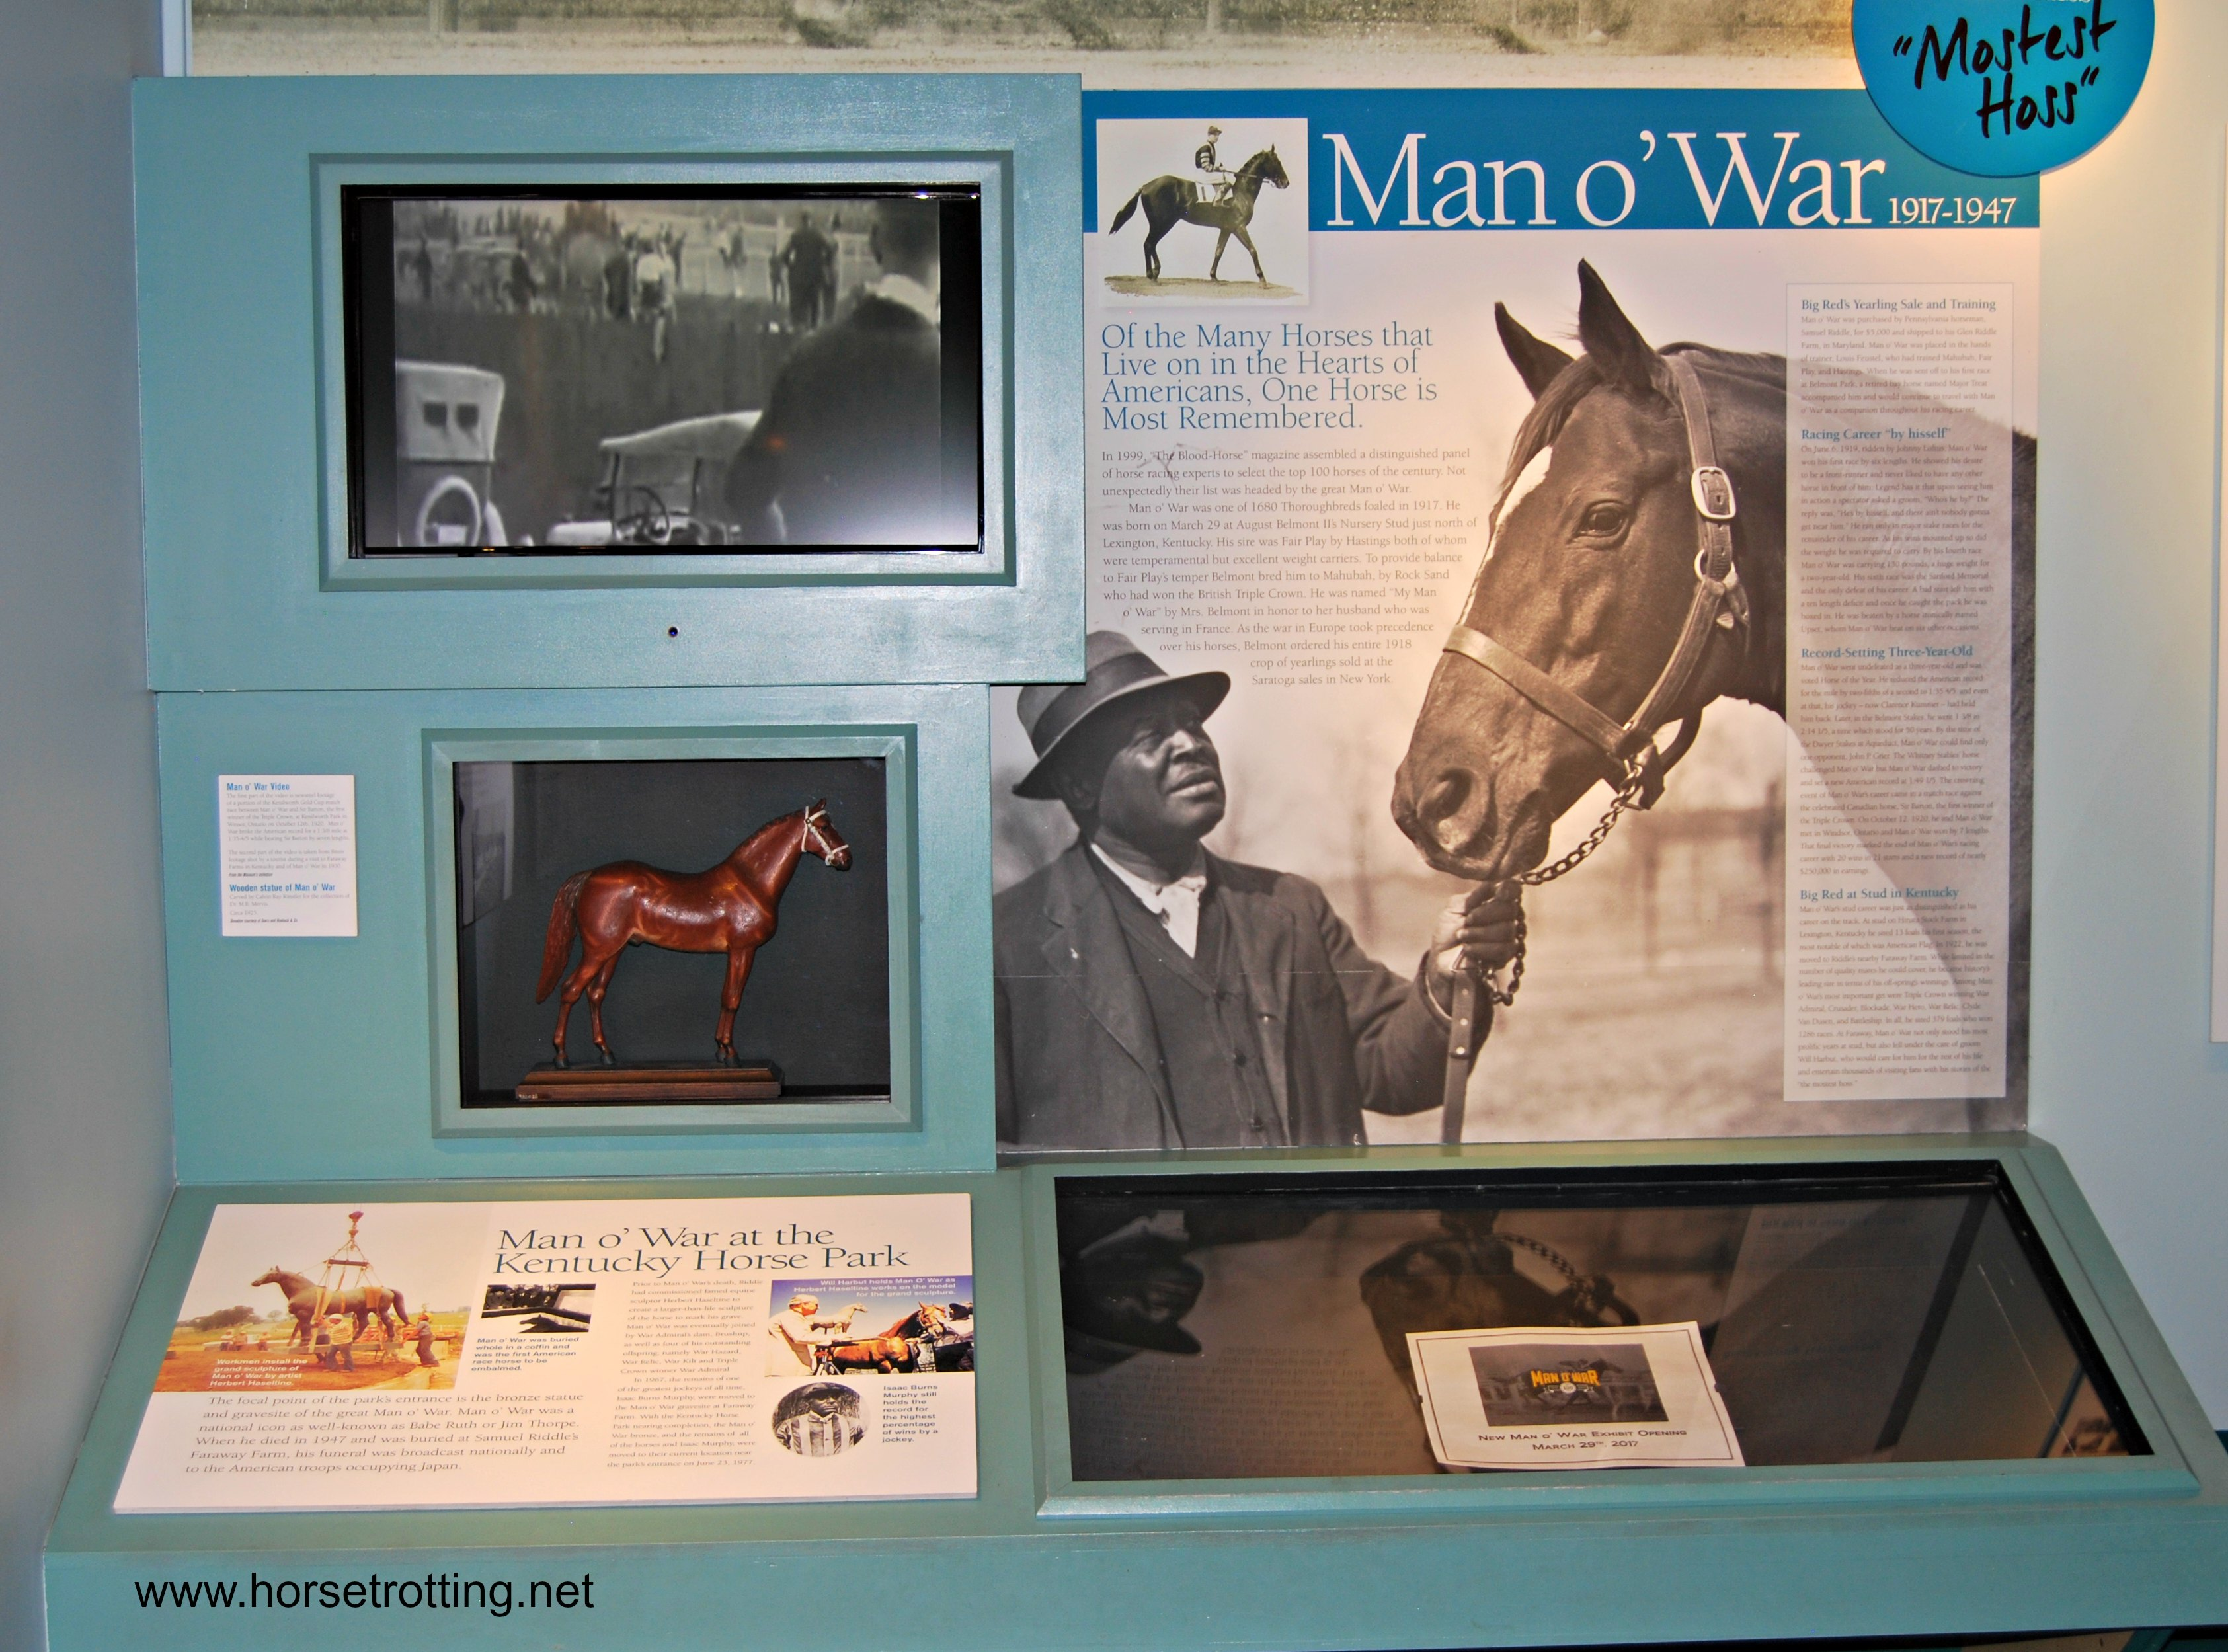 International Horse Museum, Lexington, Kentucky